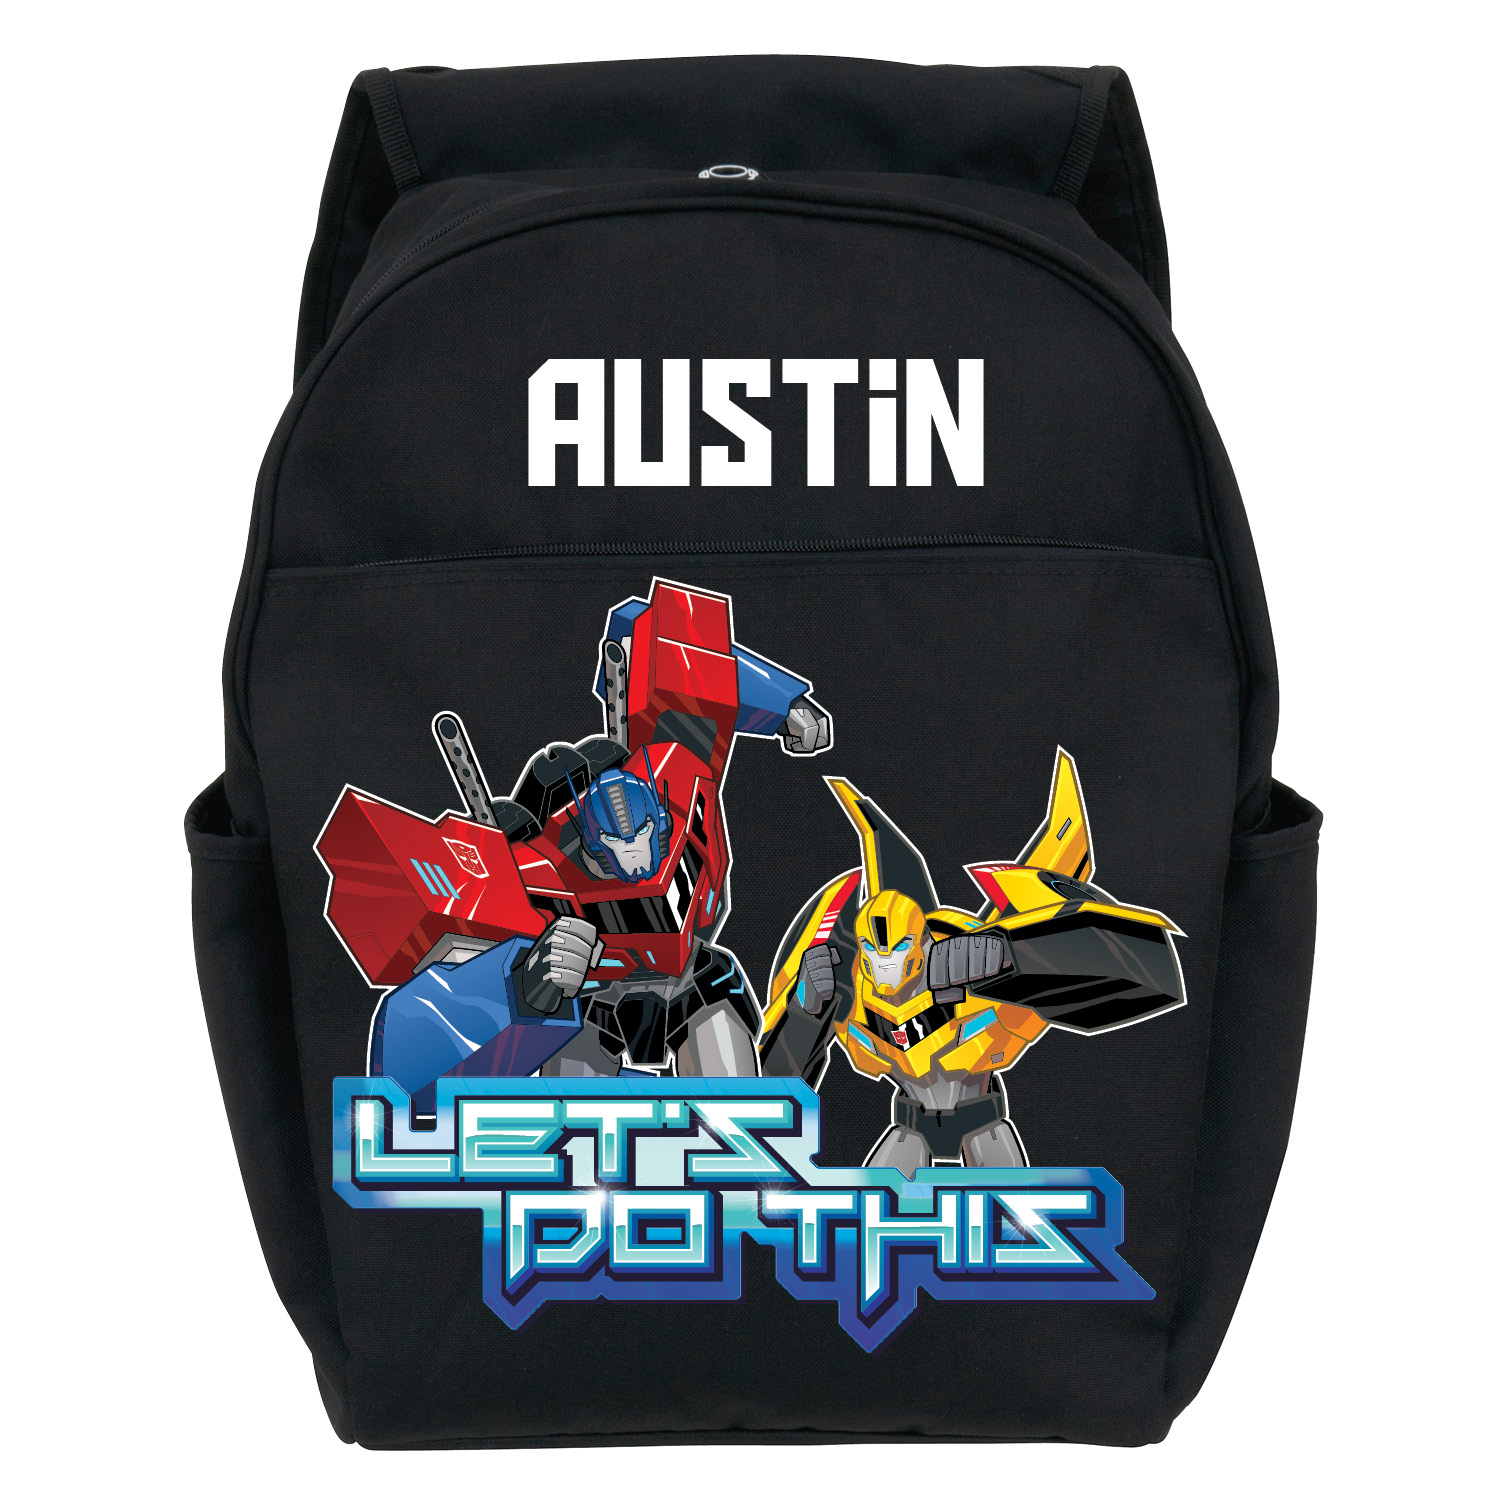 Personalized Youth Black Backpack - Transformers Robots in Disguise Let's Do This